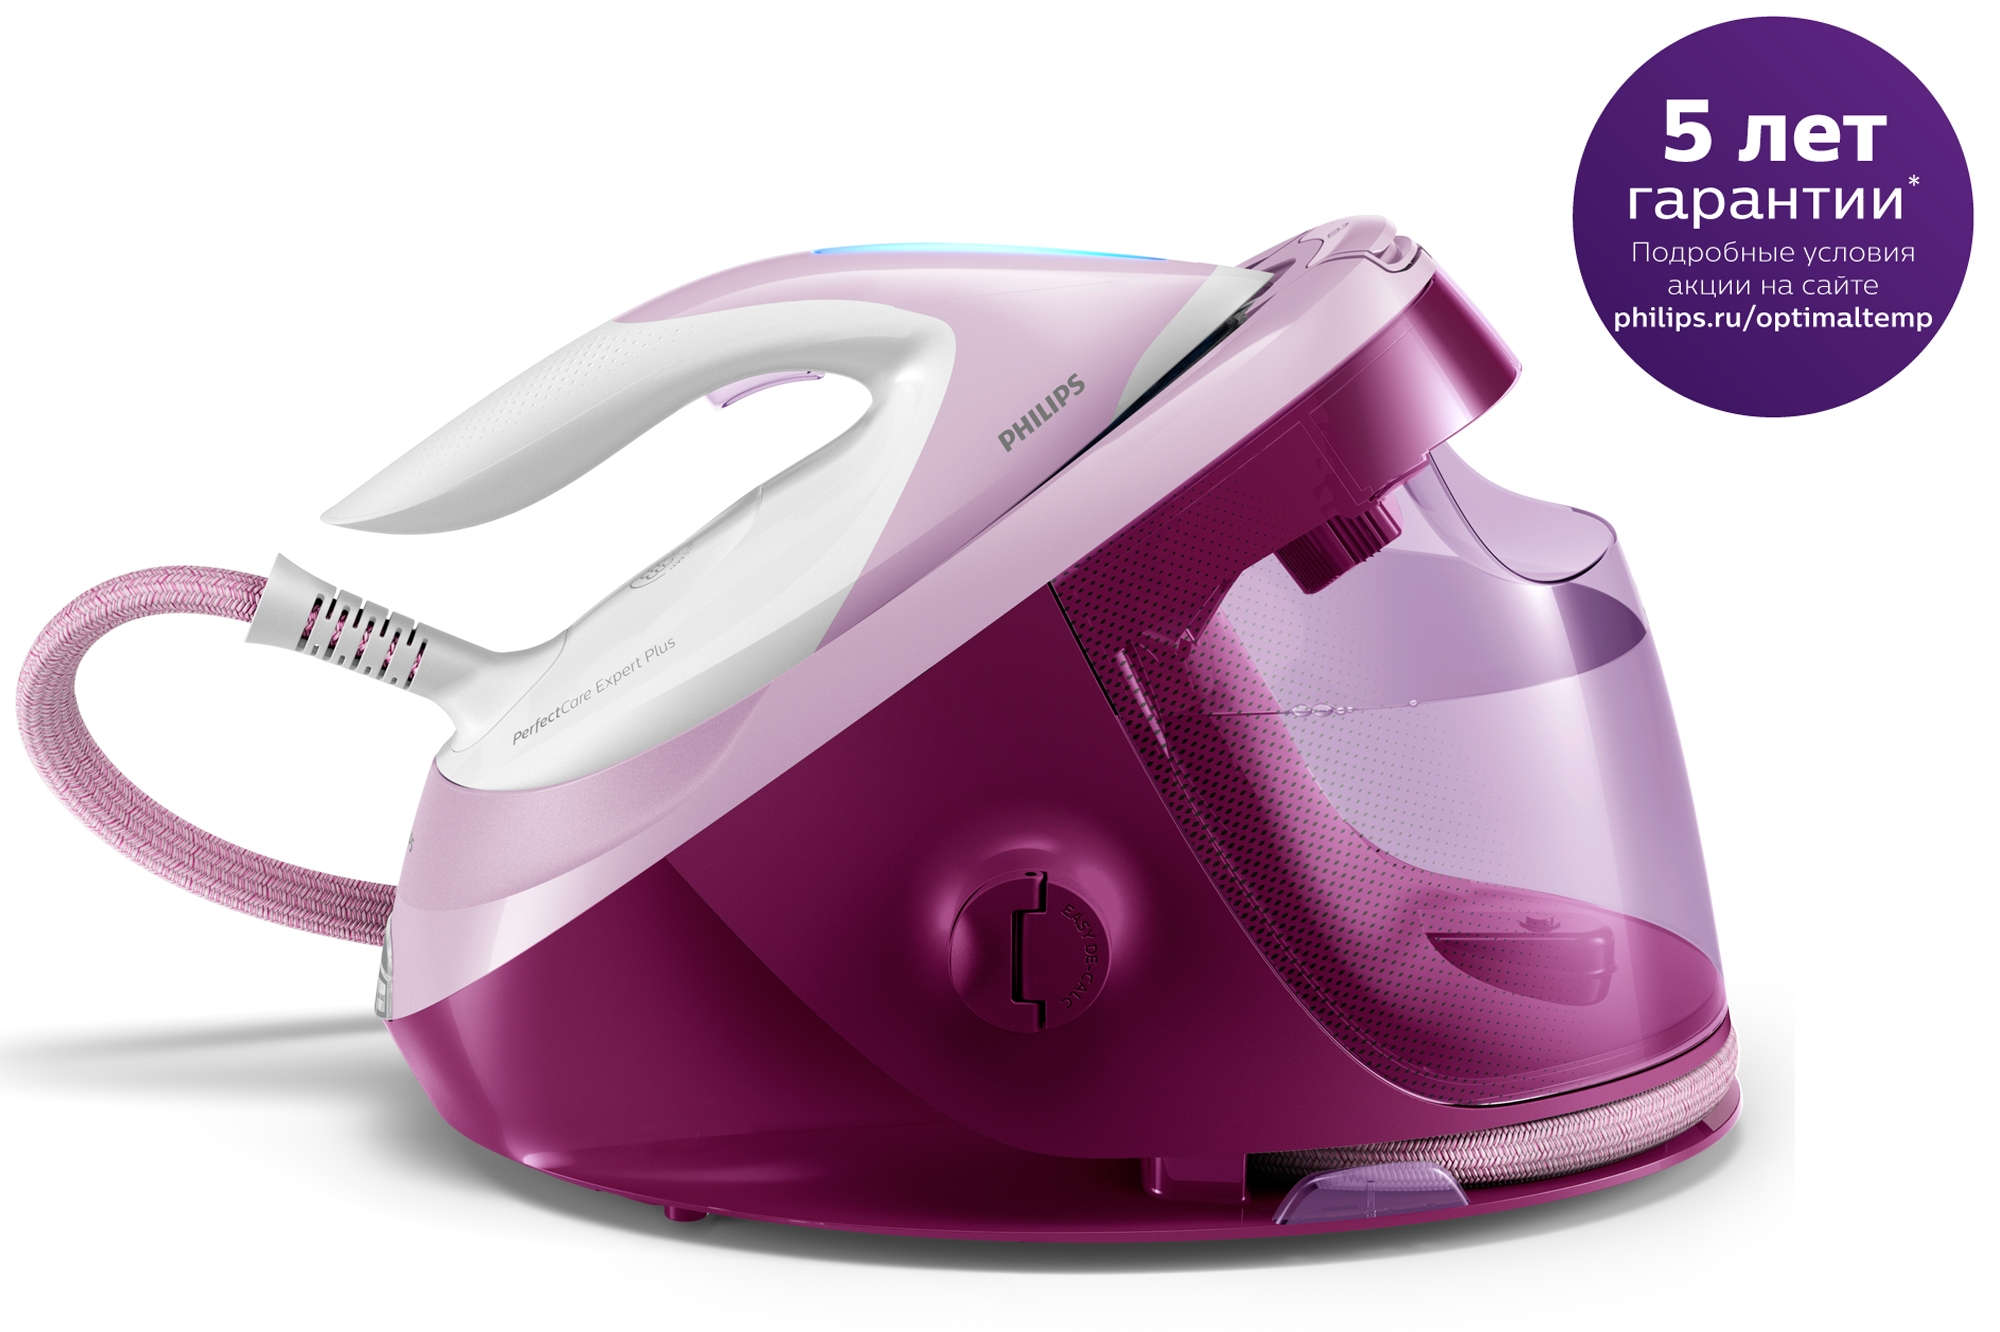 Парогенератор Philips PerfectCare Expert Plus GC8950 GC8950/30 фото